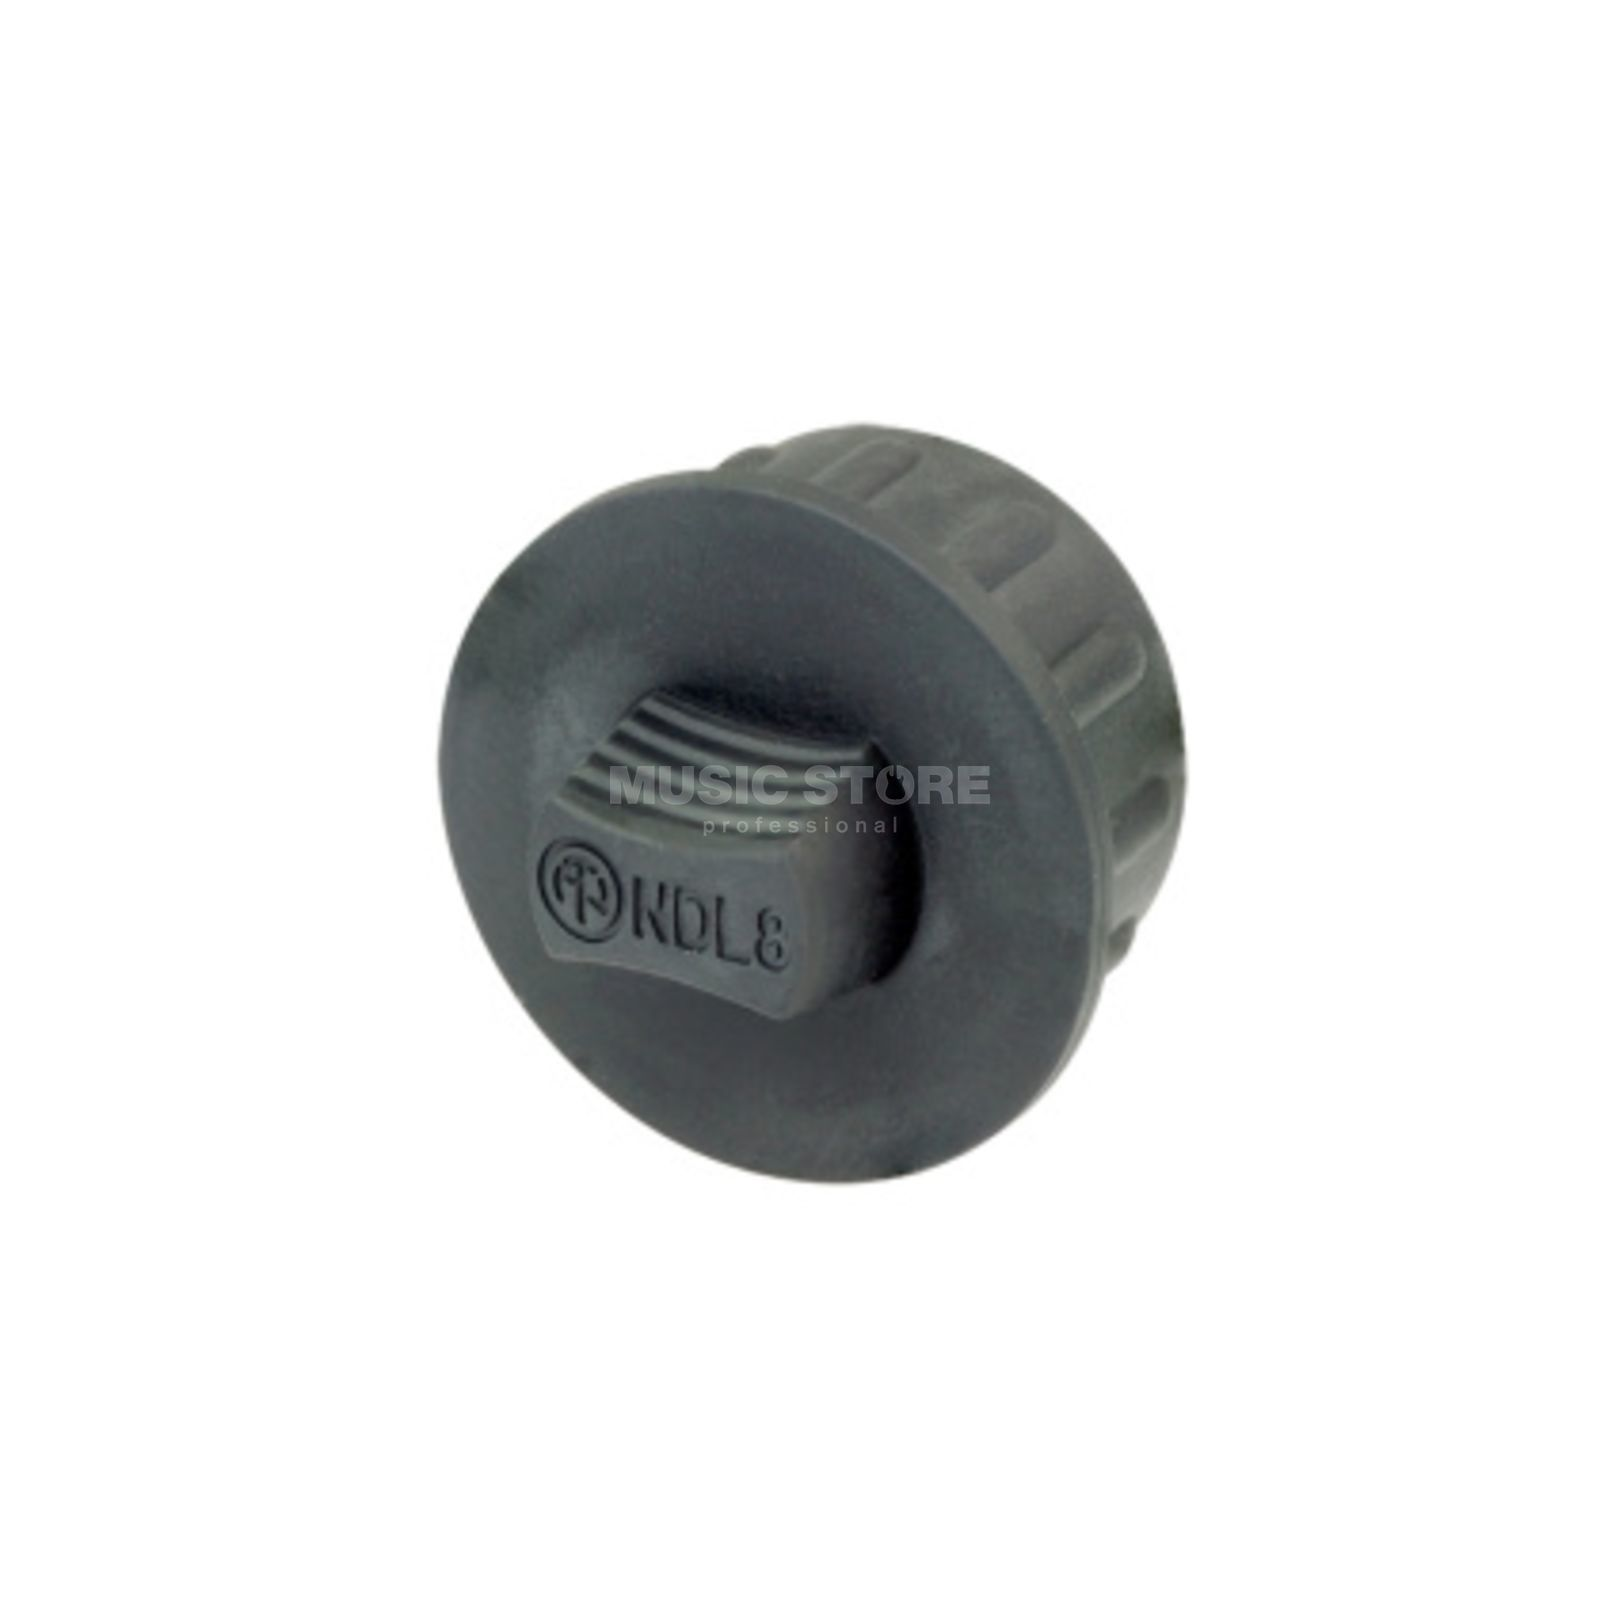 Neutrik NDL8 dummyPLUG 8-pole Speakon for Speakon Chassis Connector Product Image